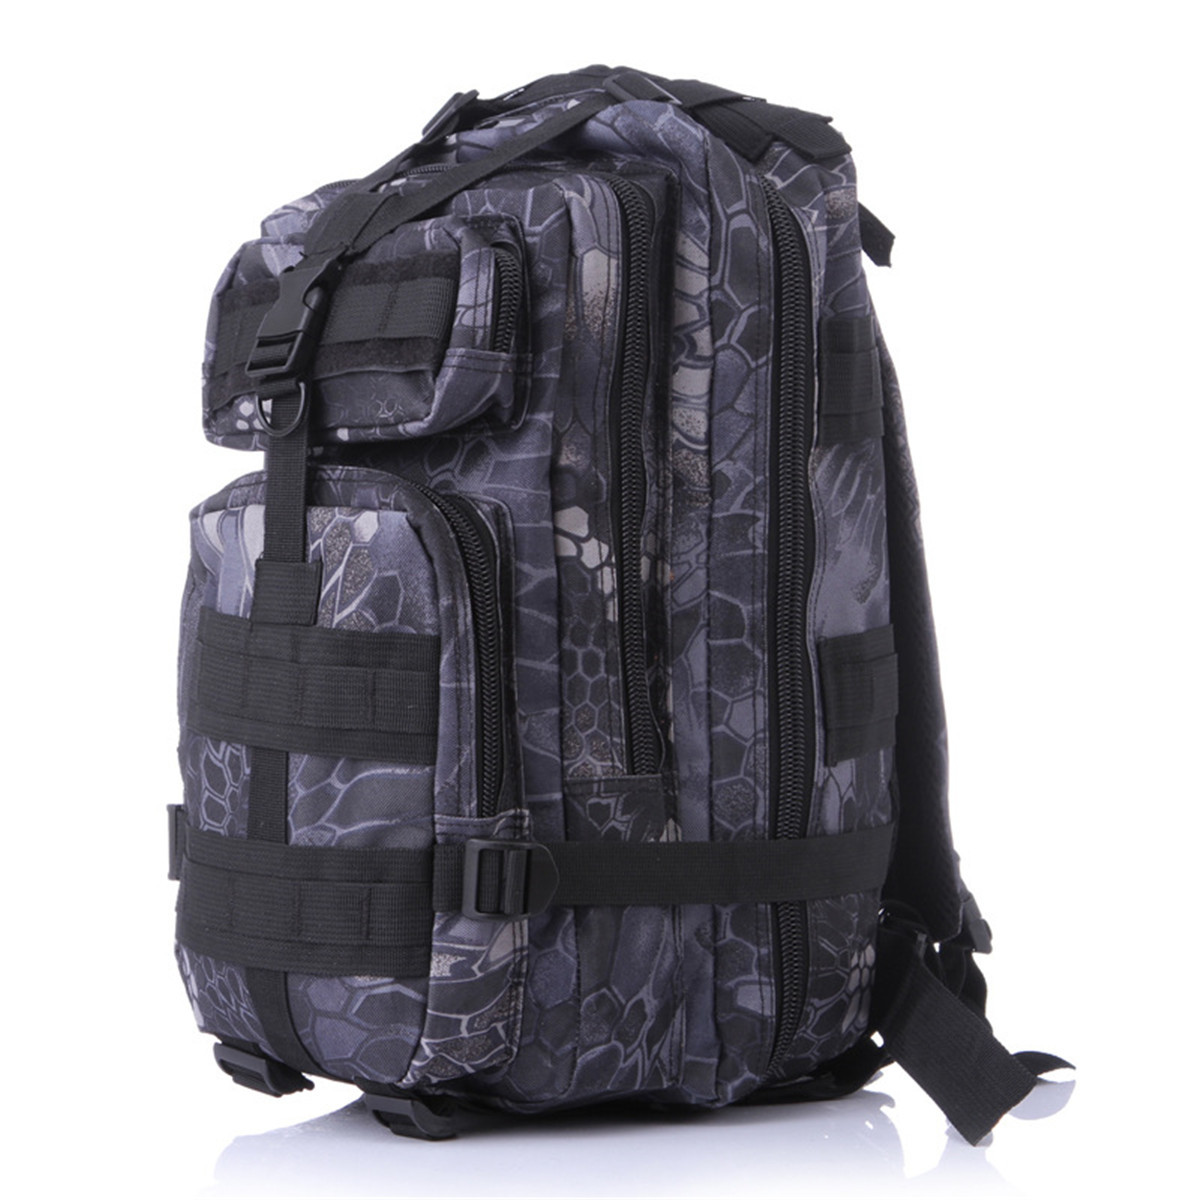 Outdoor military rucksack tactical backpack sport camping for Outdoor rucksack